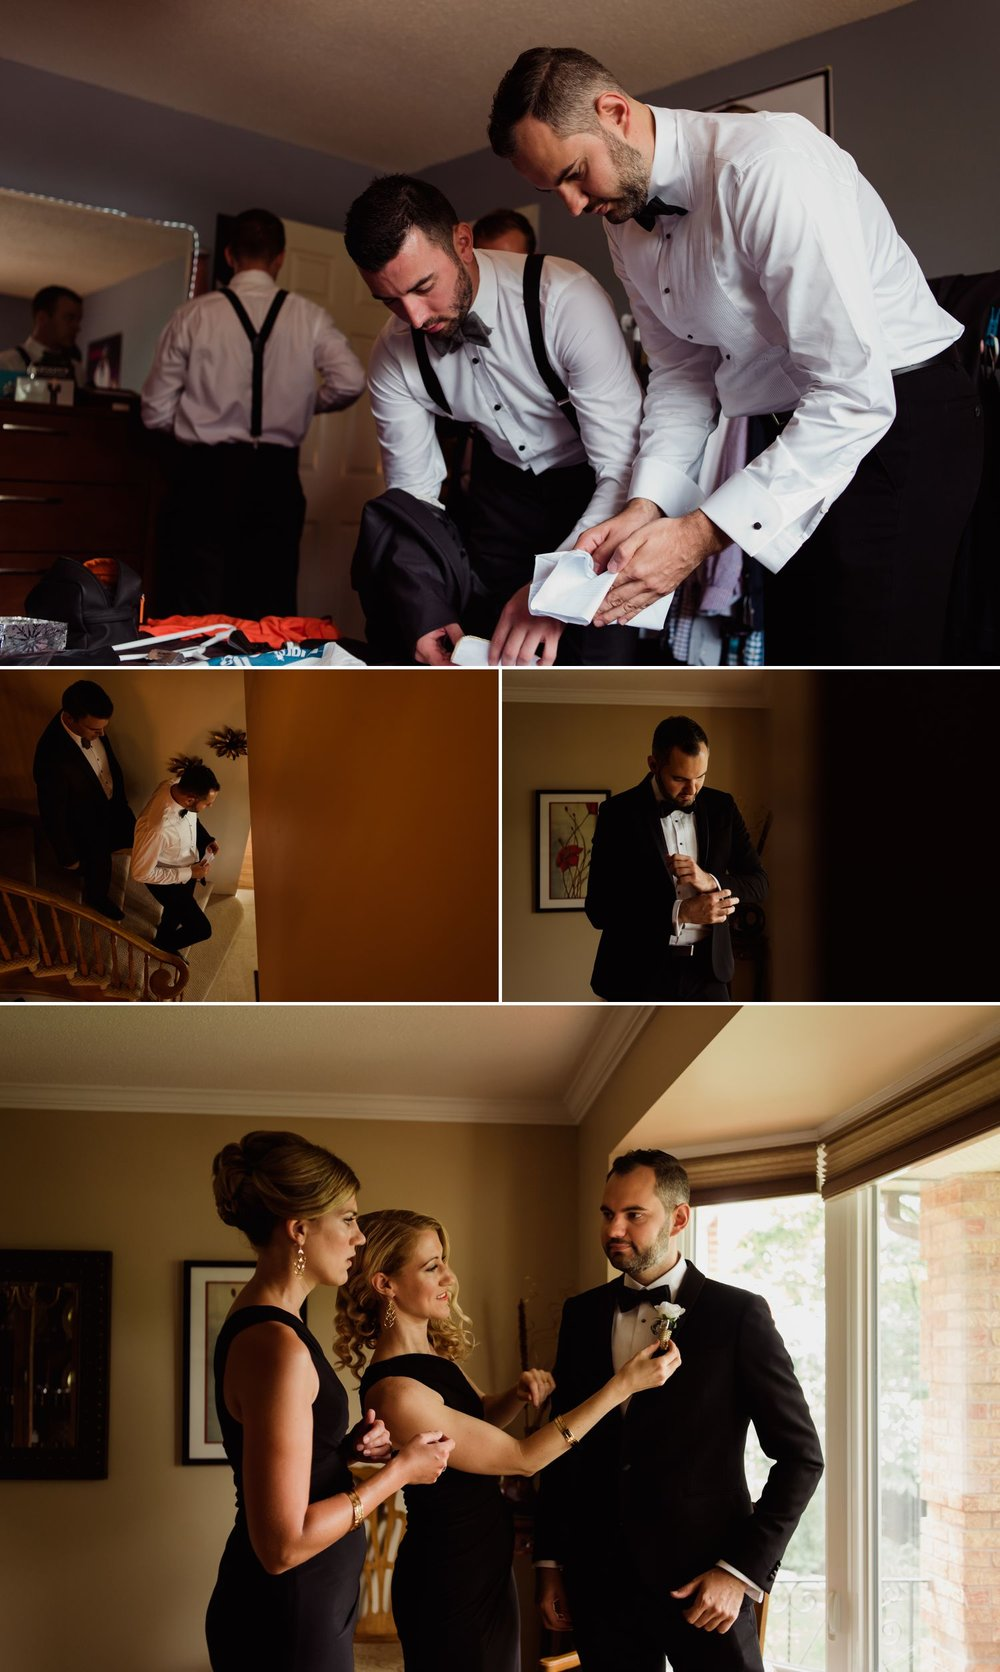 Groom getting ready at home with his family